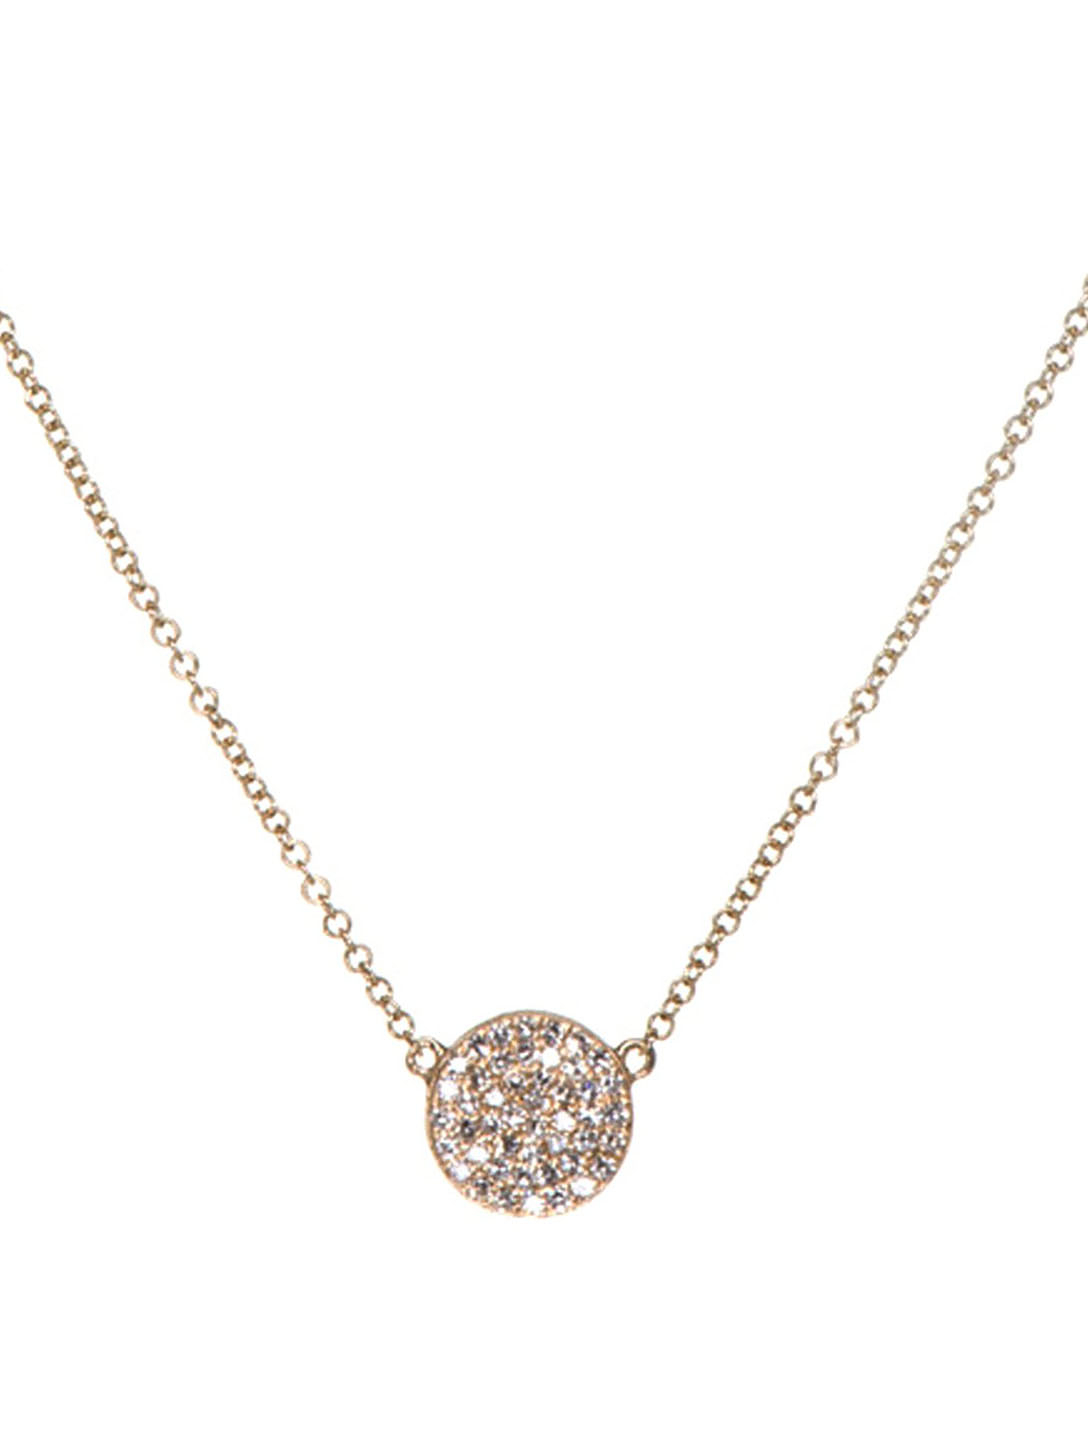 EF COLLECTION Collier en or 14 ct à disque diamanté Femmes Métallique